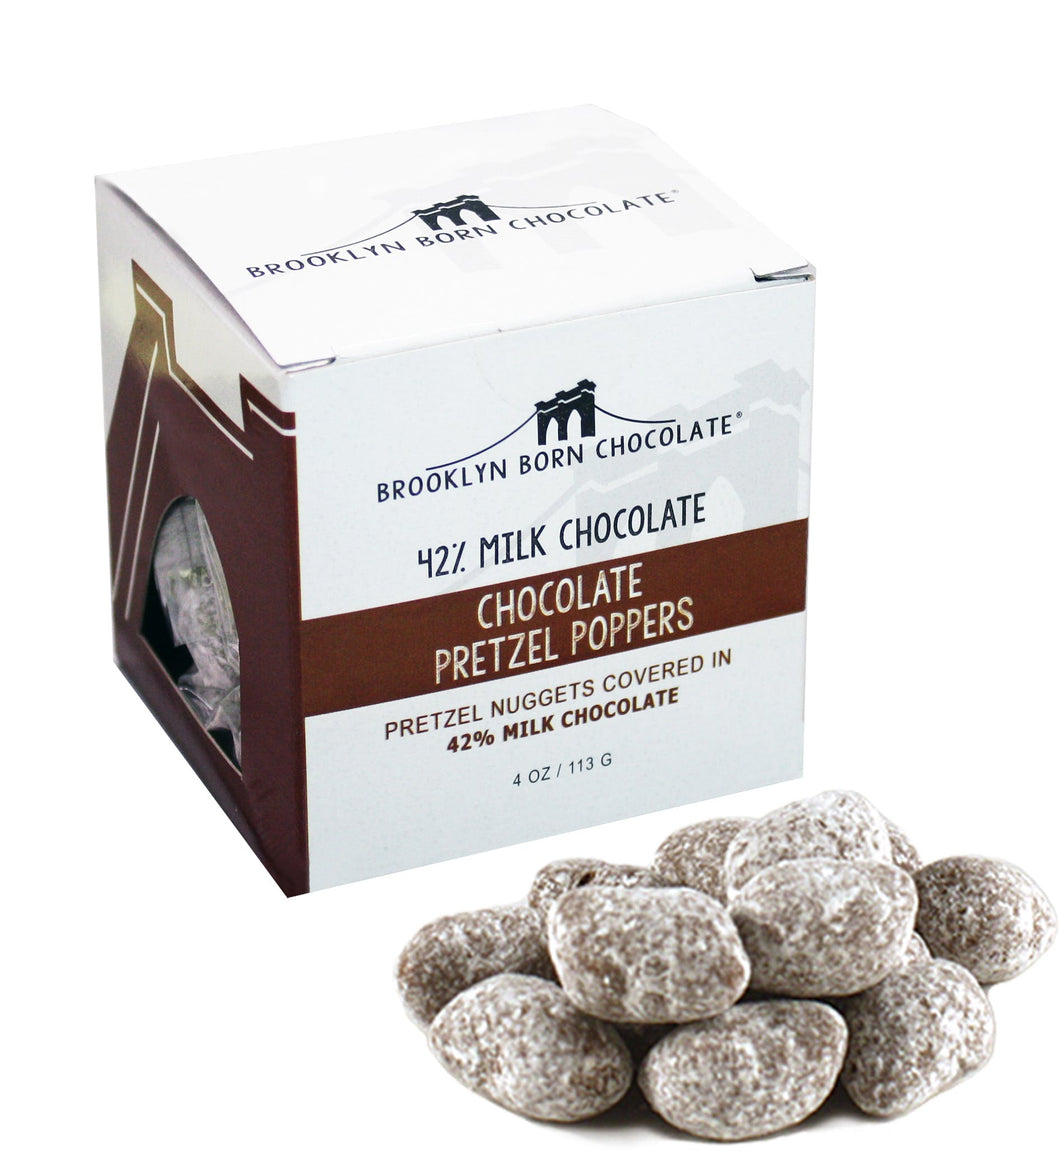 Brooklyn Born Chocolate - Chocolate Pretzel Poppers - 4 oz